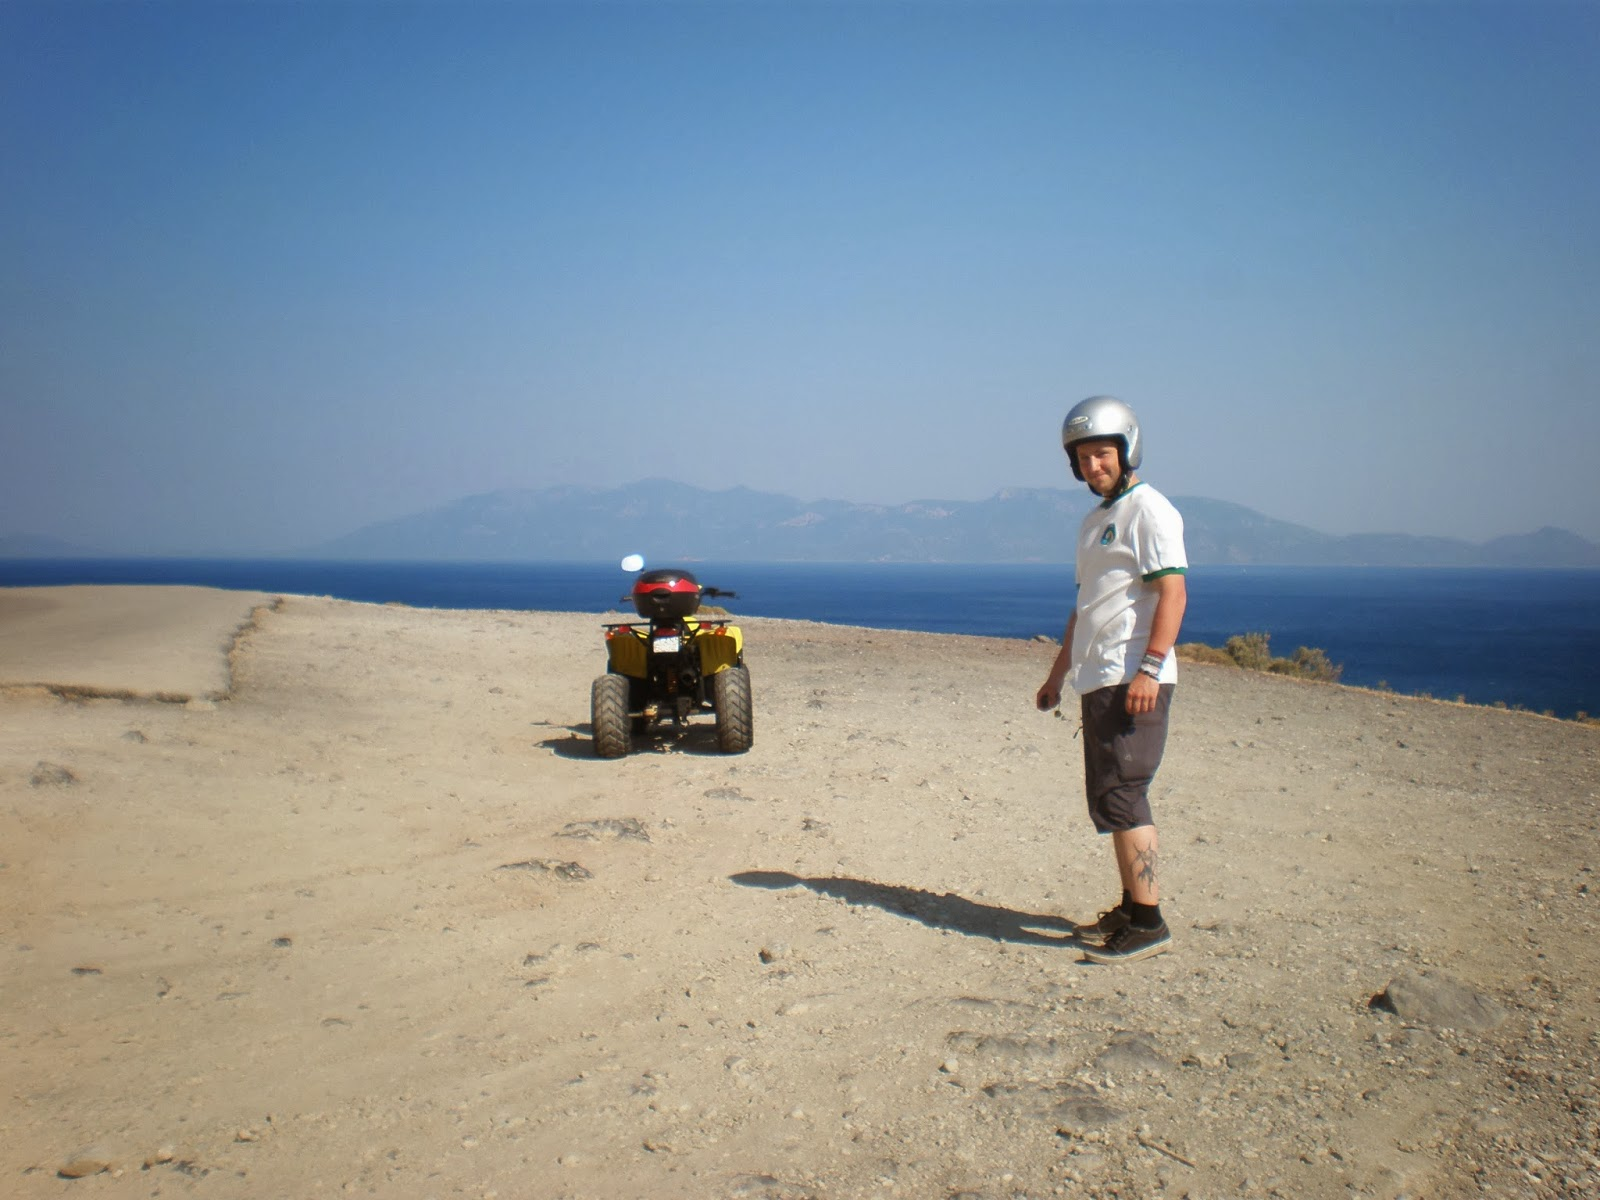 quad bike, quad biking, beach, relax, sea, sun, sand, holiday, Kos, Greece, Europe, traditional church, view, mountain, zia, lambi, kos town, beautiful view, travel, travelling, holiday, sea, sun,